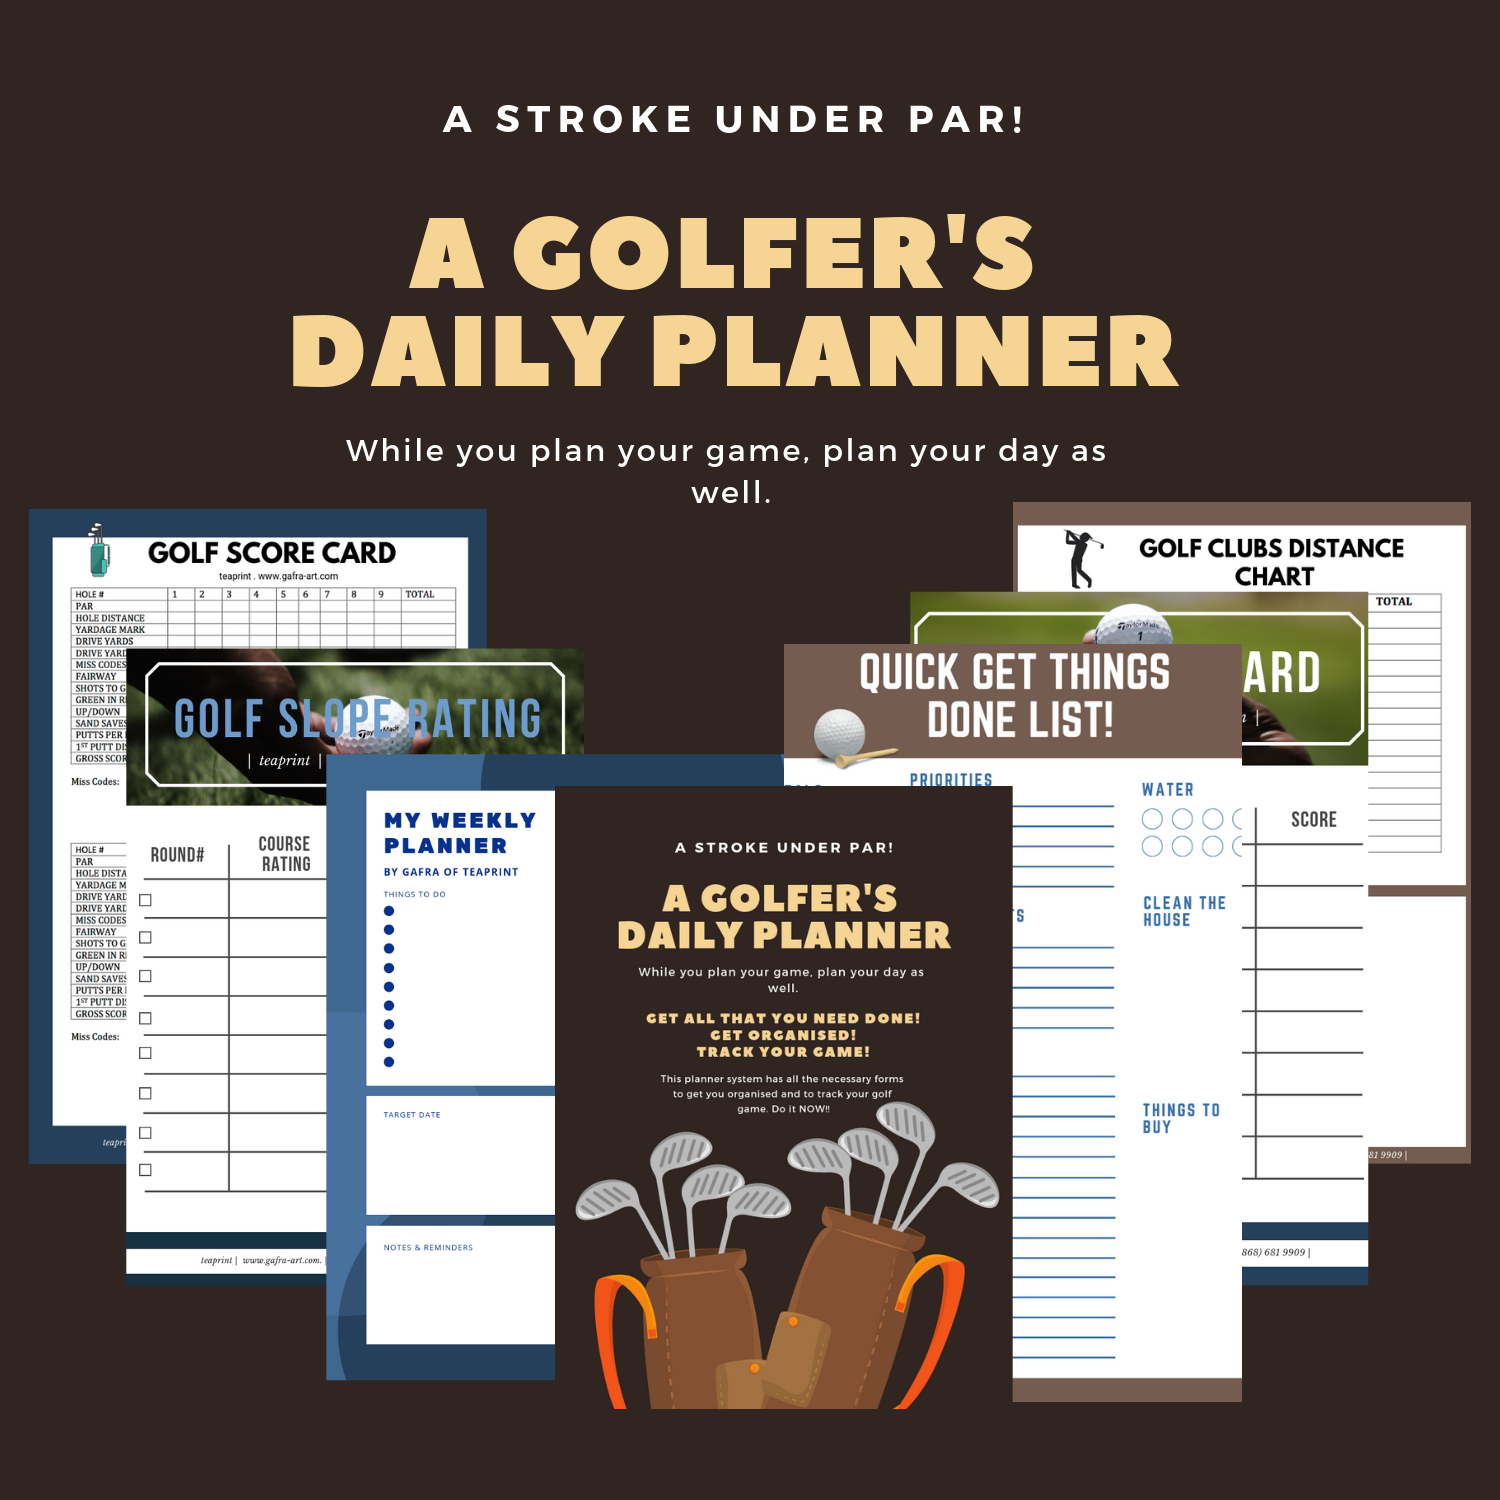 Get this   PRINTABLES PLANNERS HERE    It has some helpful scorecards and forms for the golfing enthusiast